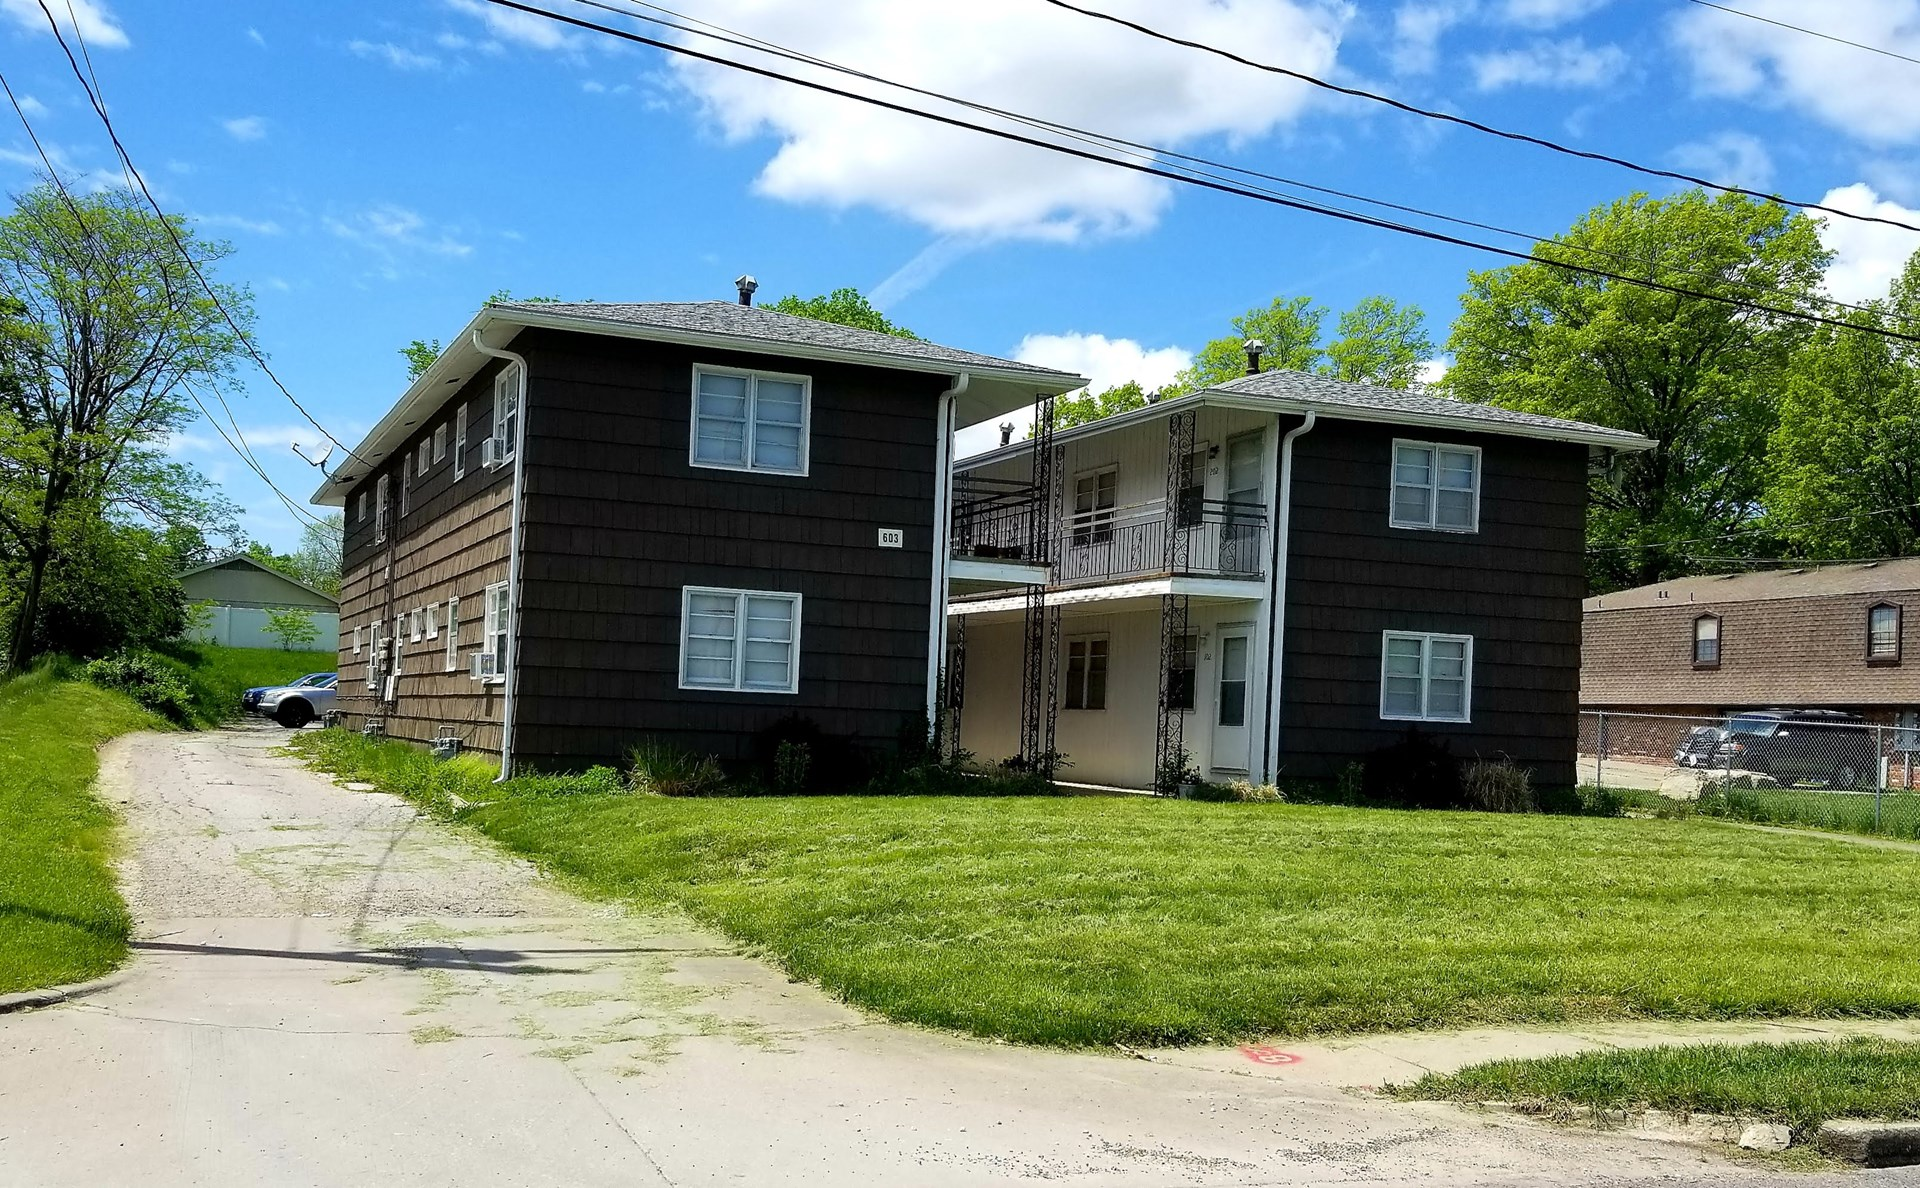 Apartment Building For Sale in Columbia, MO -Rental Property